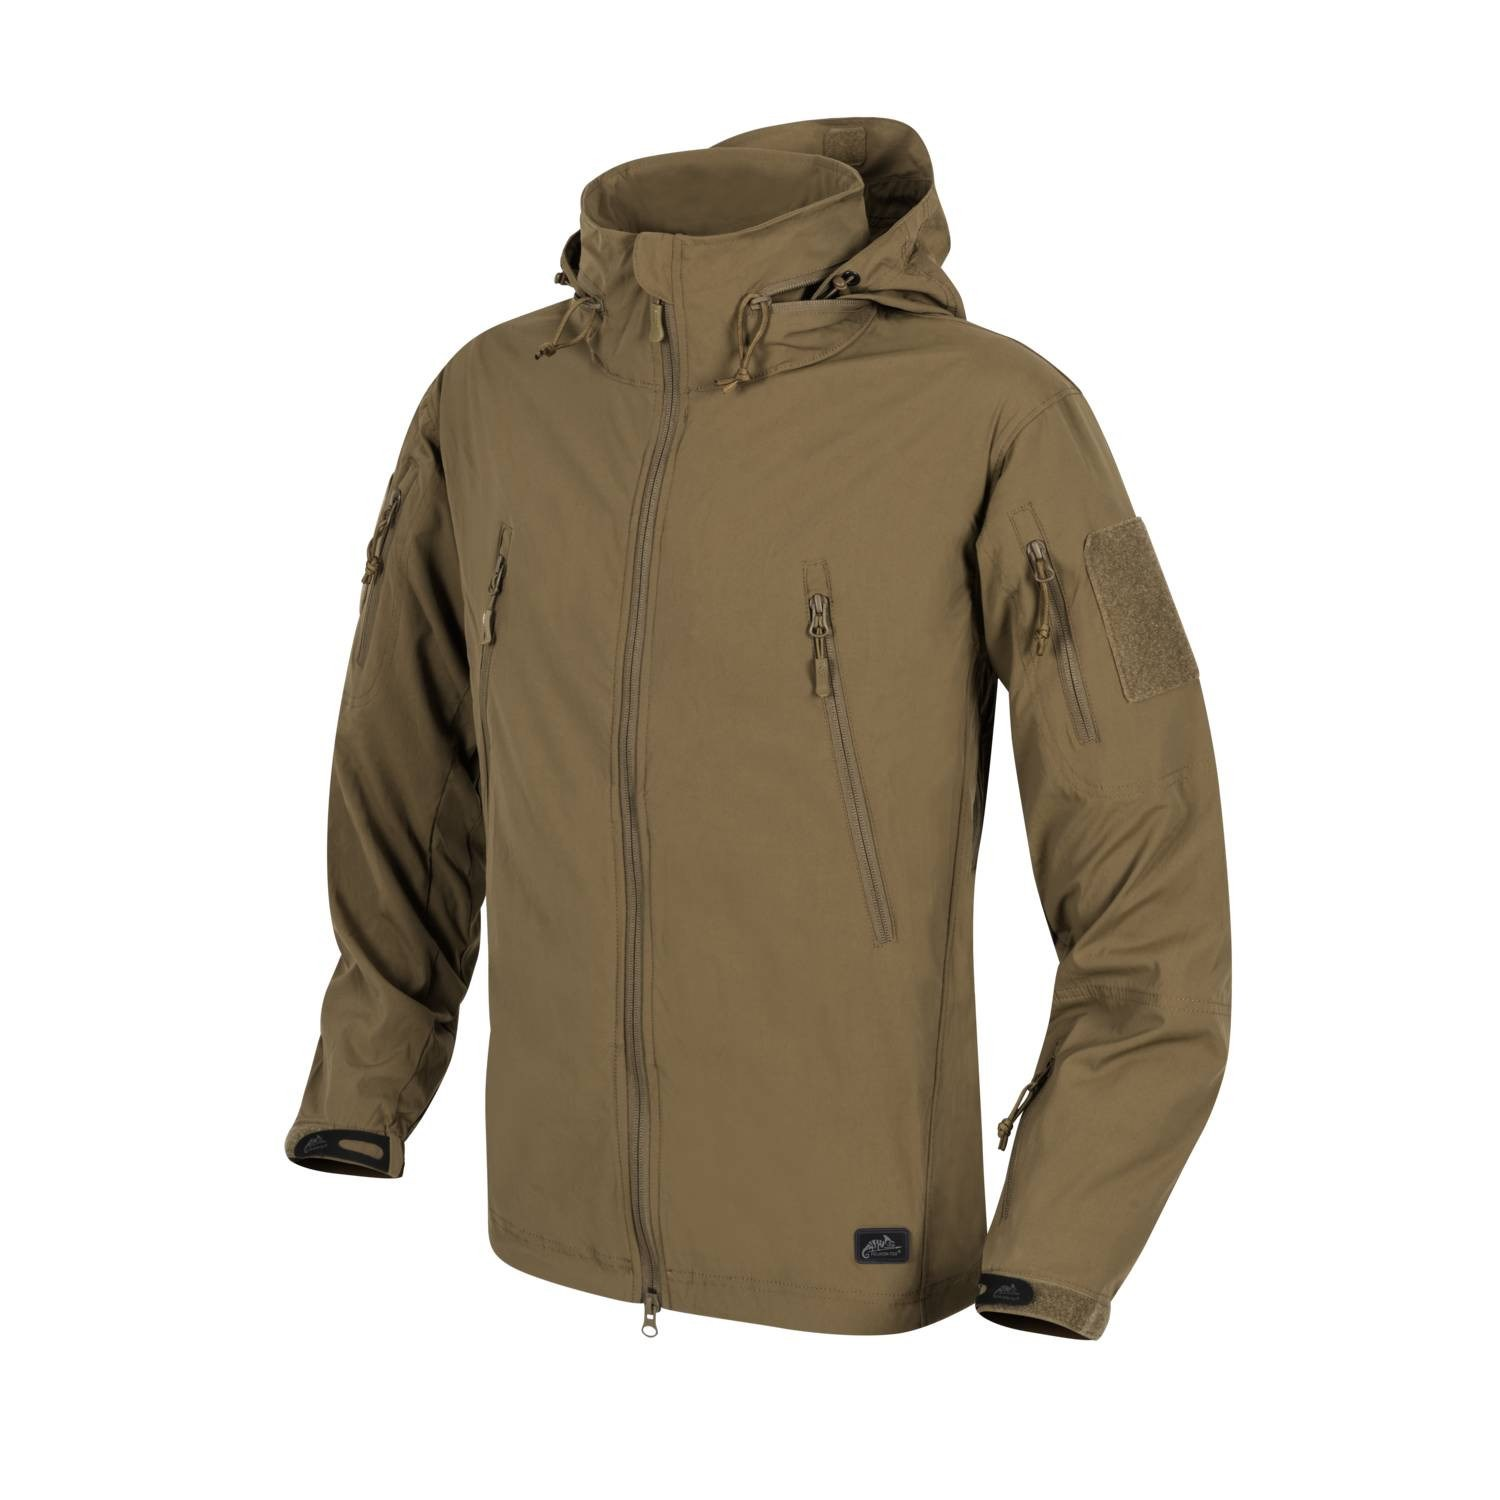 Bunda TROOPER softshell MUD BROWN Helikon-Tex® KU-TRP-NL-60 L-11